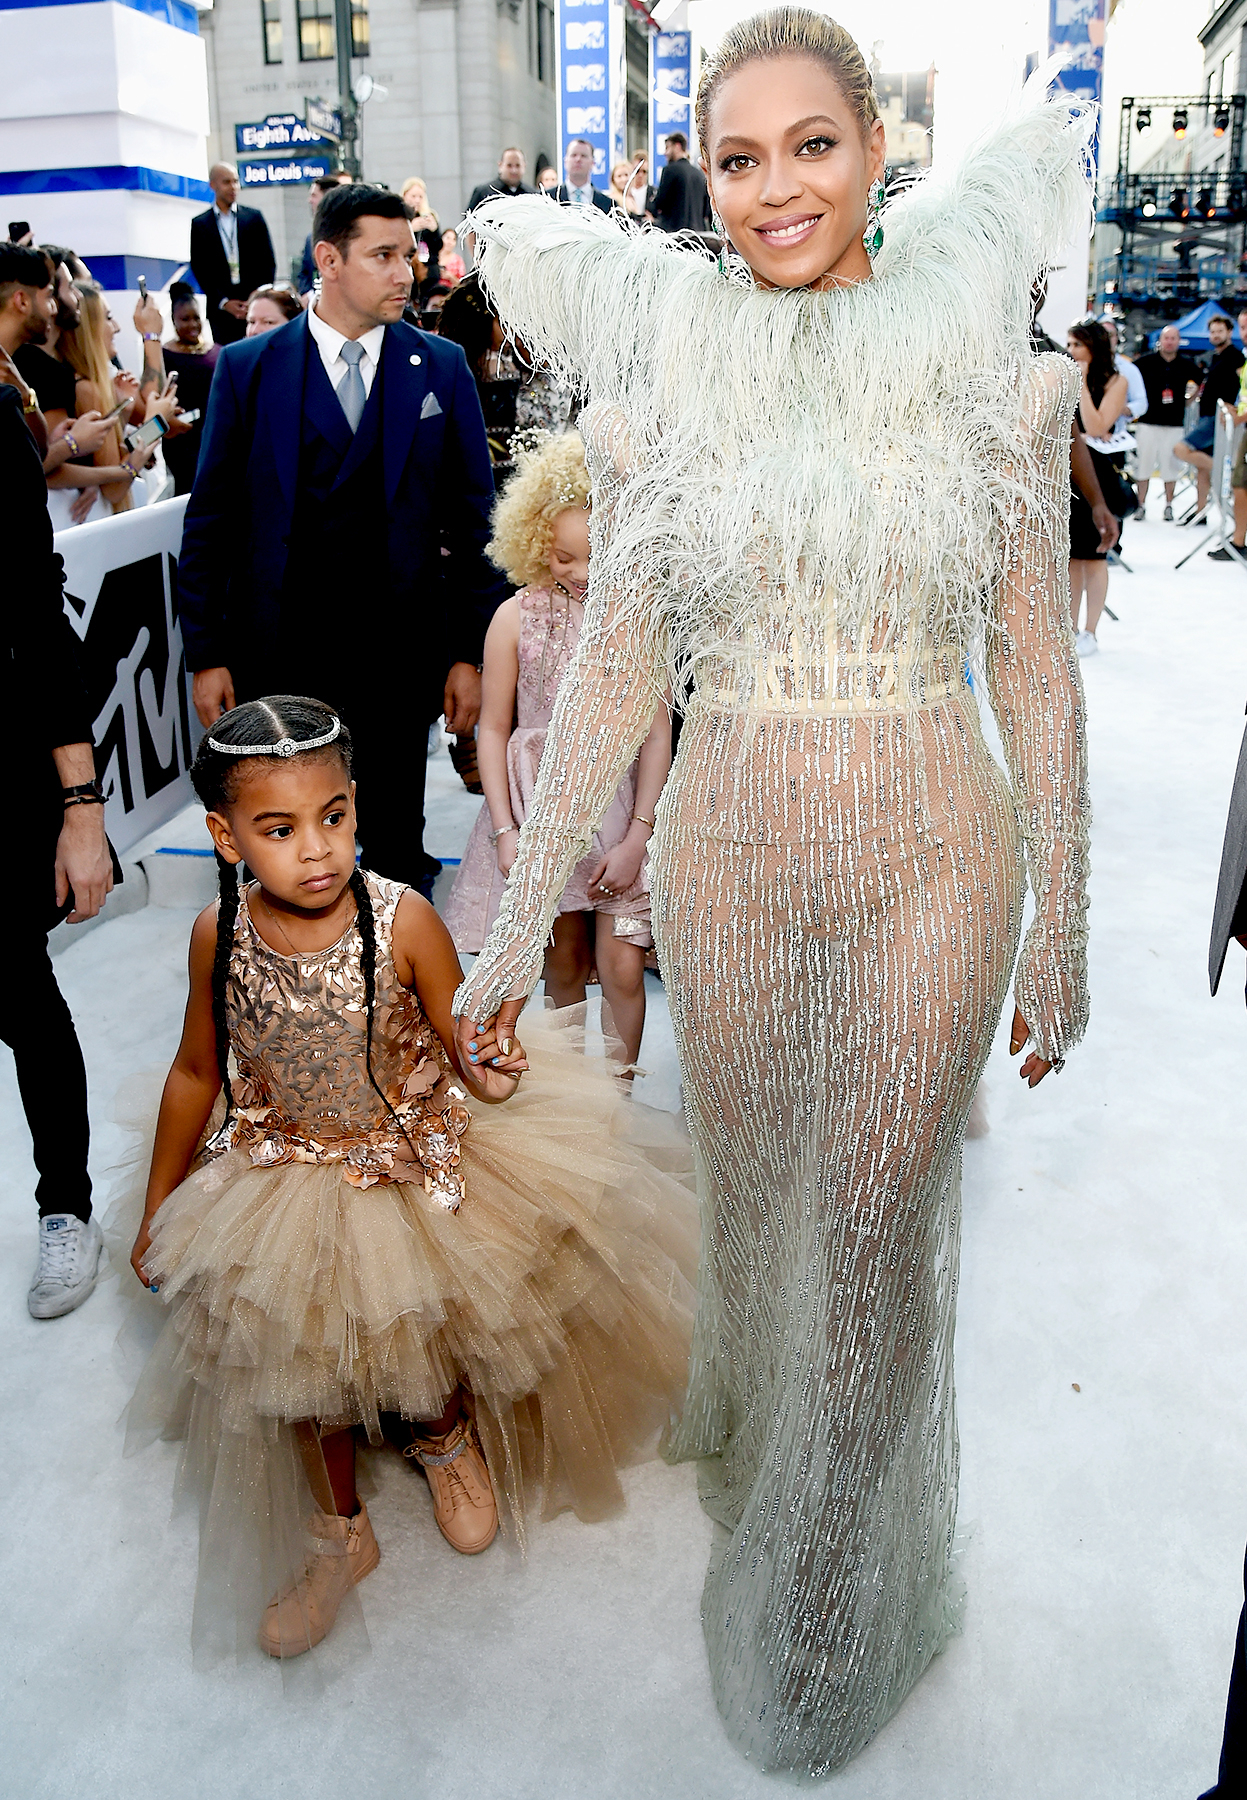 Beyonce Knowles and daughter Blue Ivy Carter attend the 2016 MTV Video Music Awards at Madison Square Garden on August 28, 2016 in New York City.